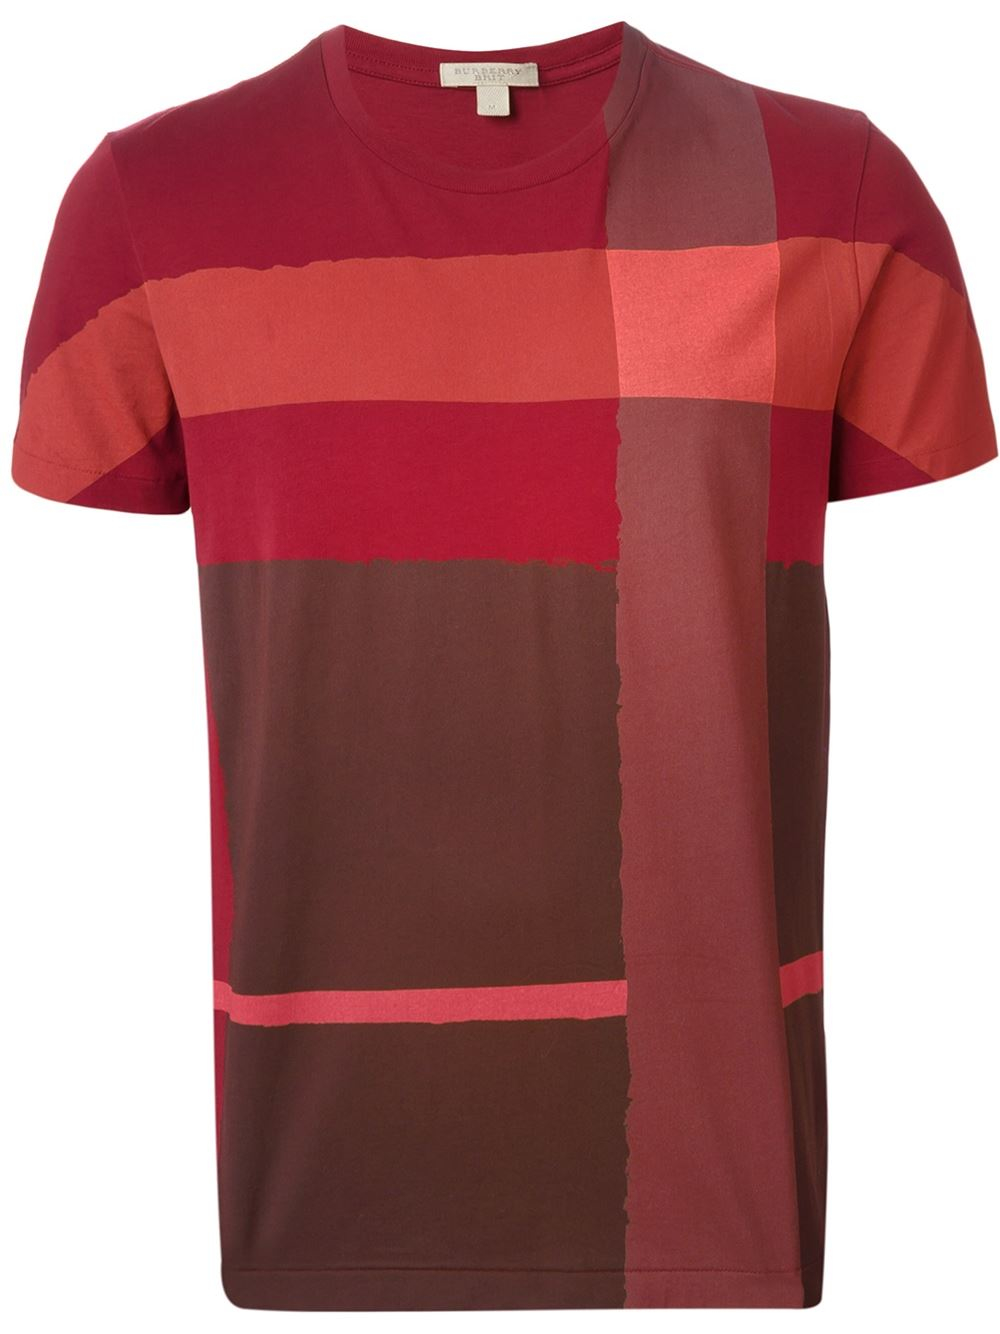 burberry brit check print cotton t shirt in red for men lyst. Black Bedroom Furniture Sets. Home Design Ideas